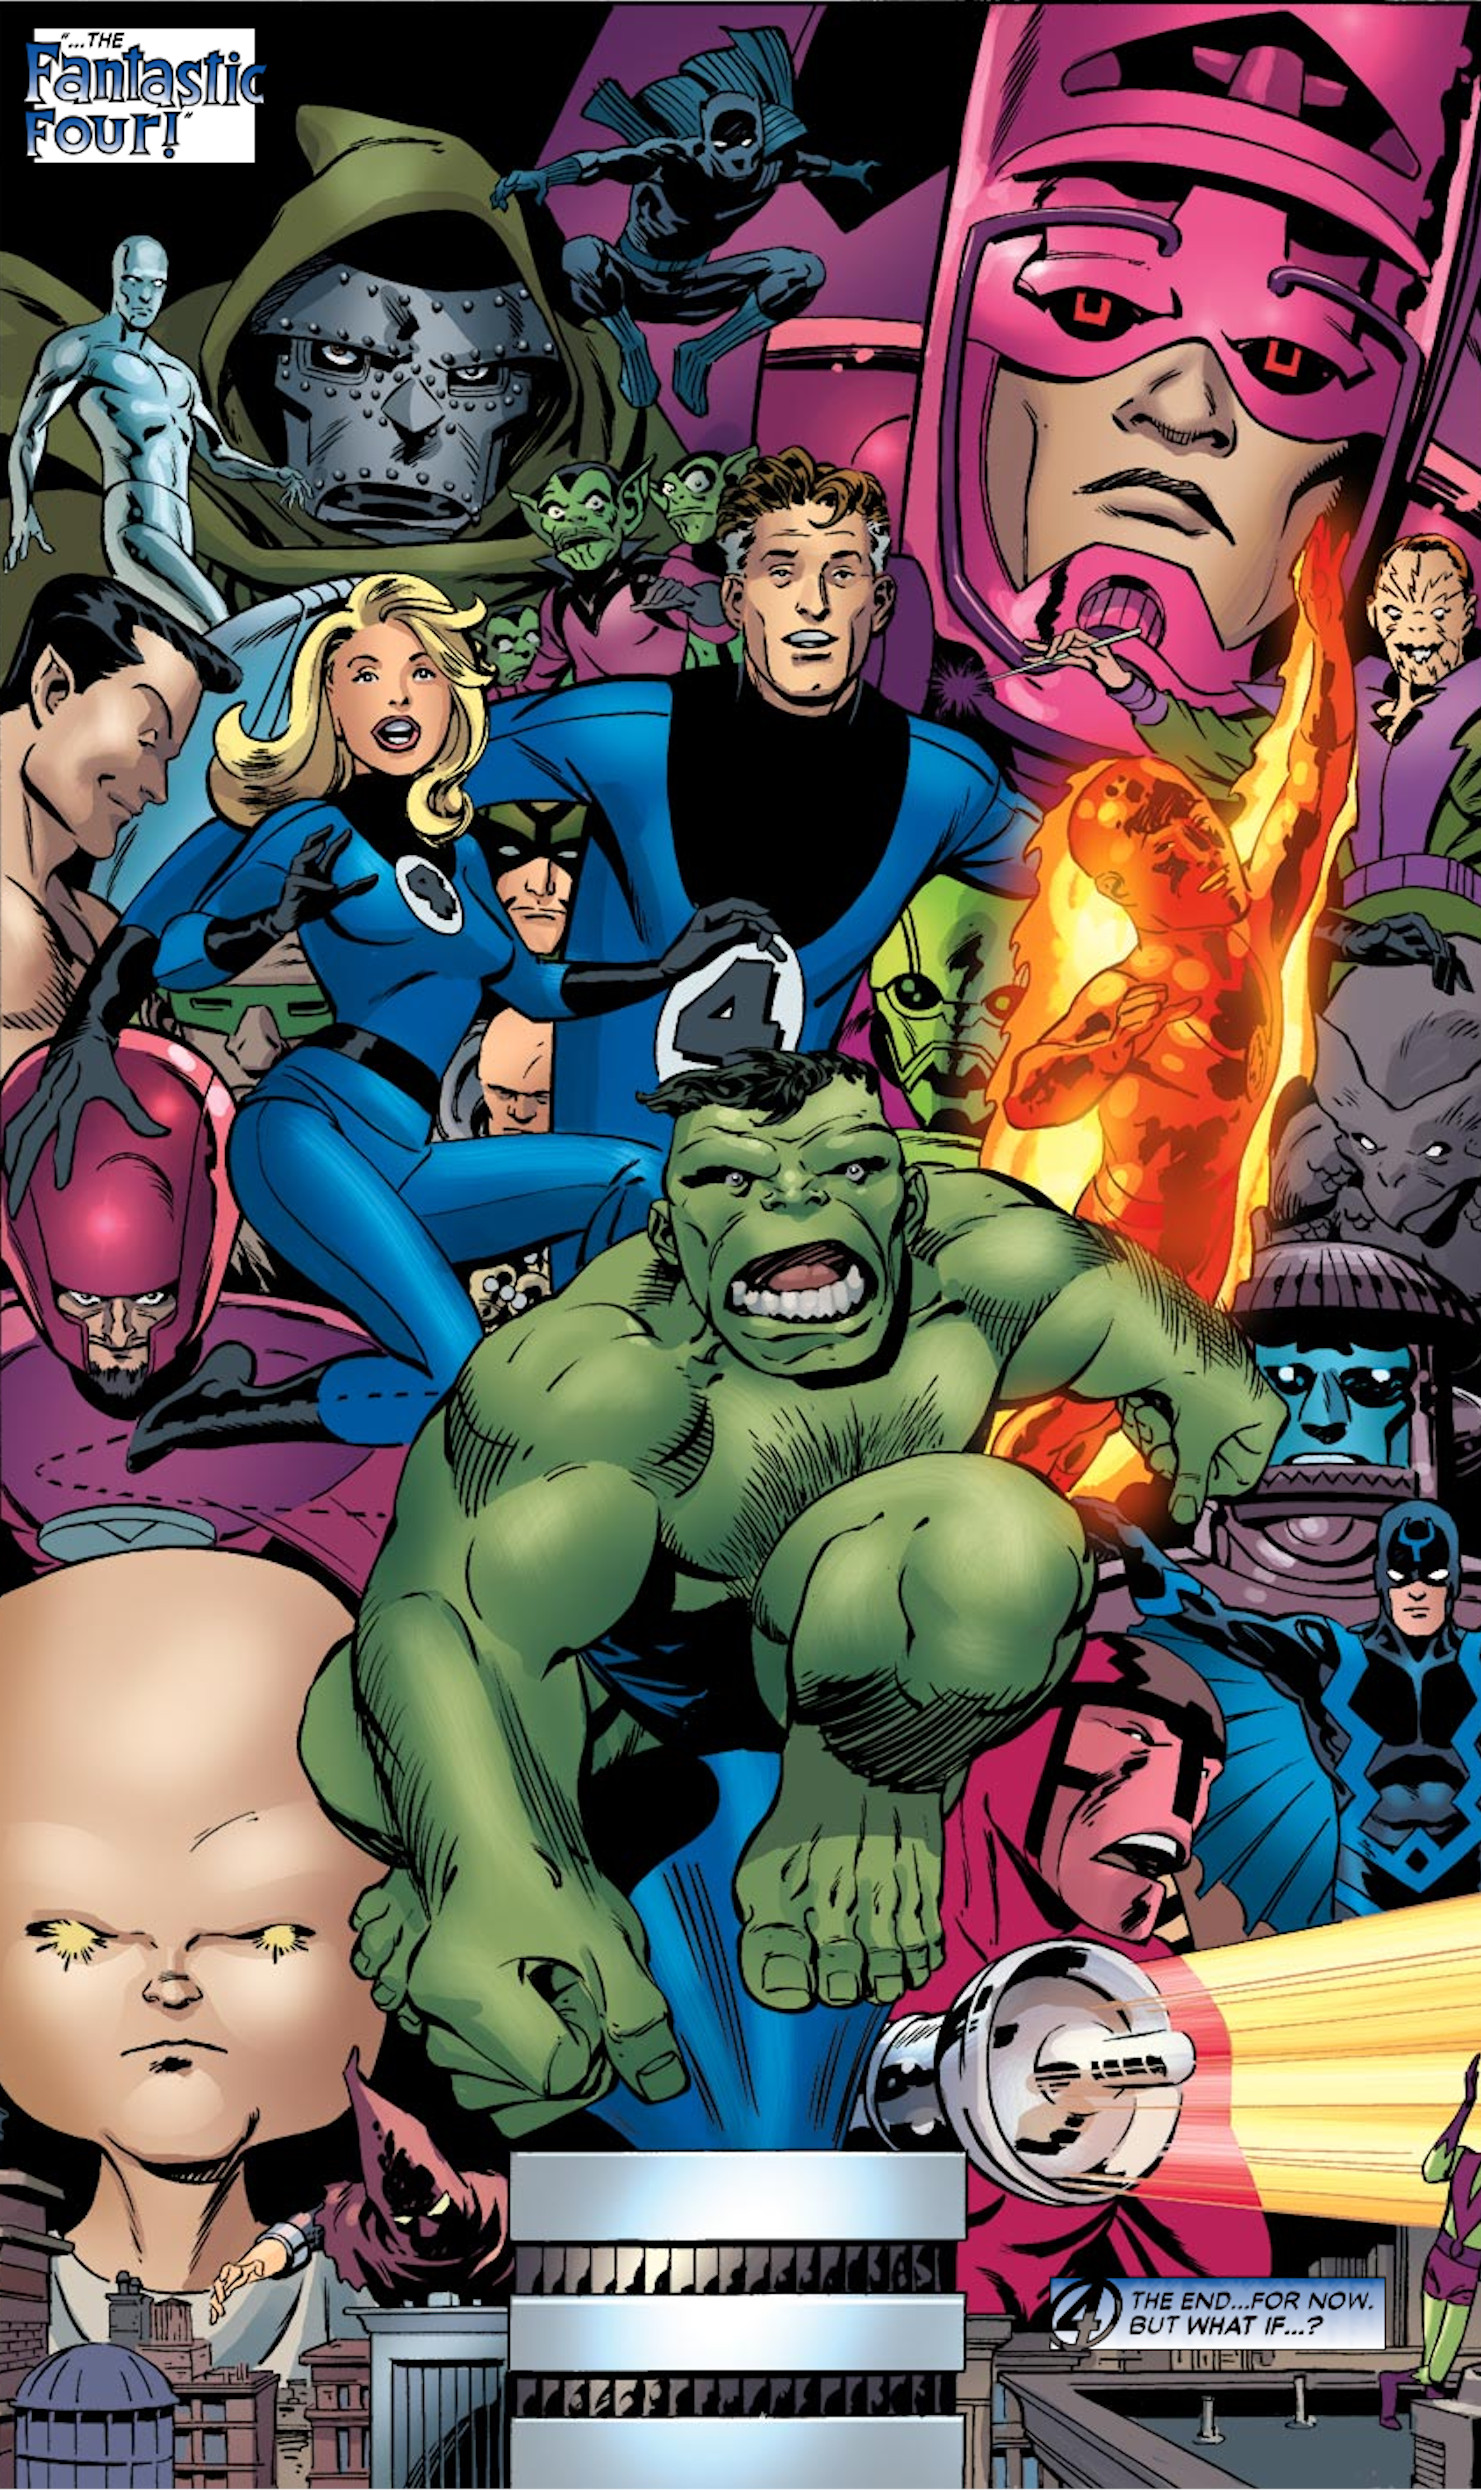 Fantastic Four (Earth-523003)/Gallery